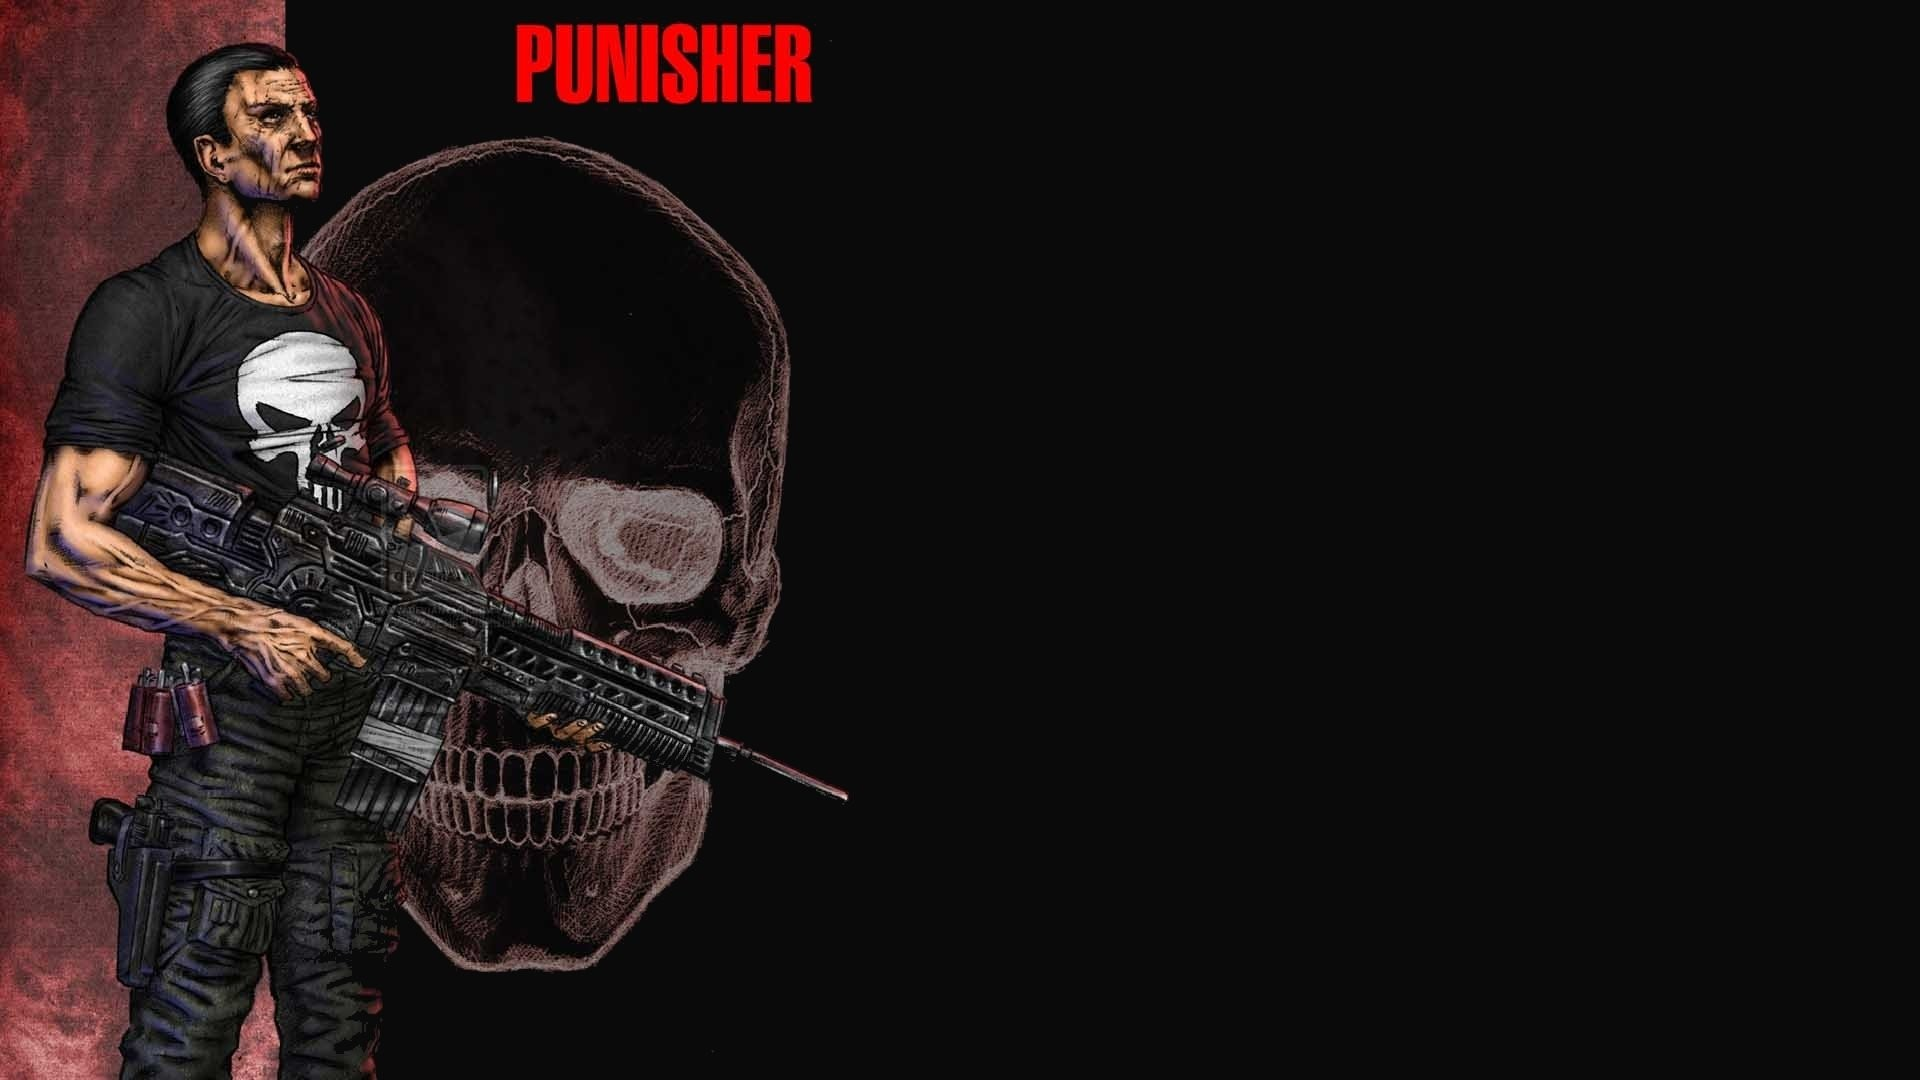 Punisher HD Wallpapers Backgrounds Wallpaper